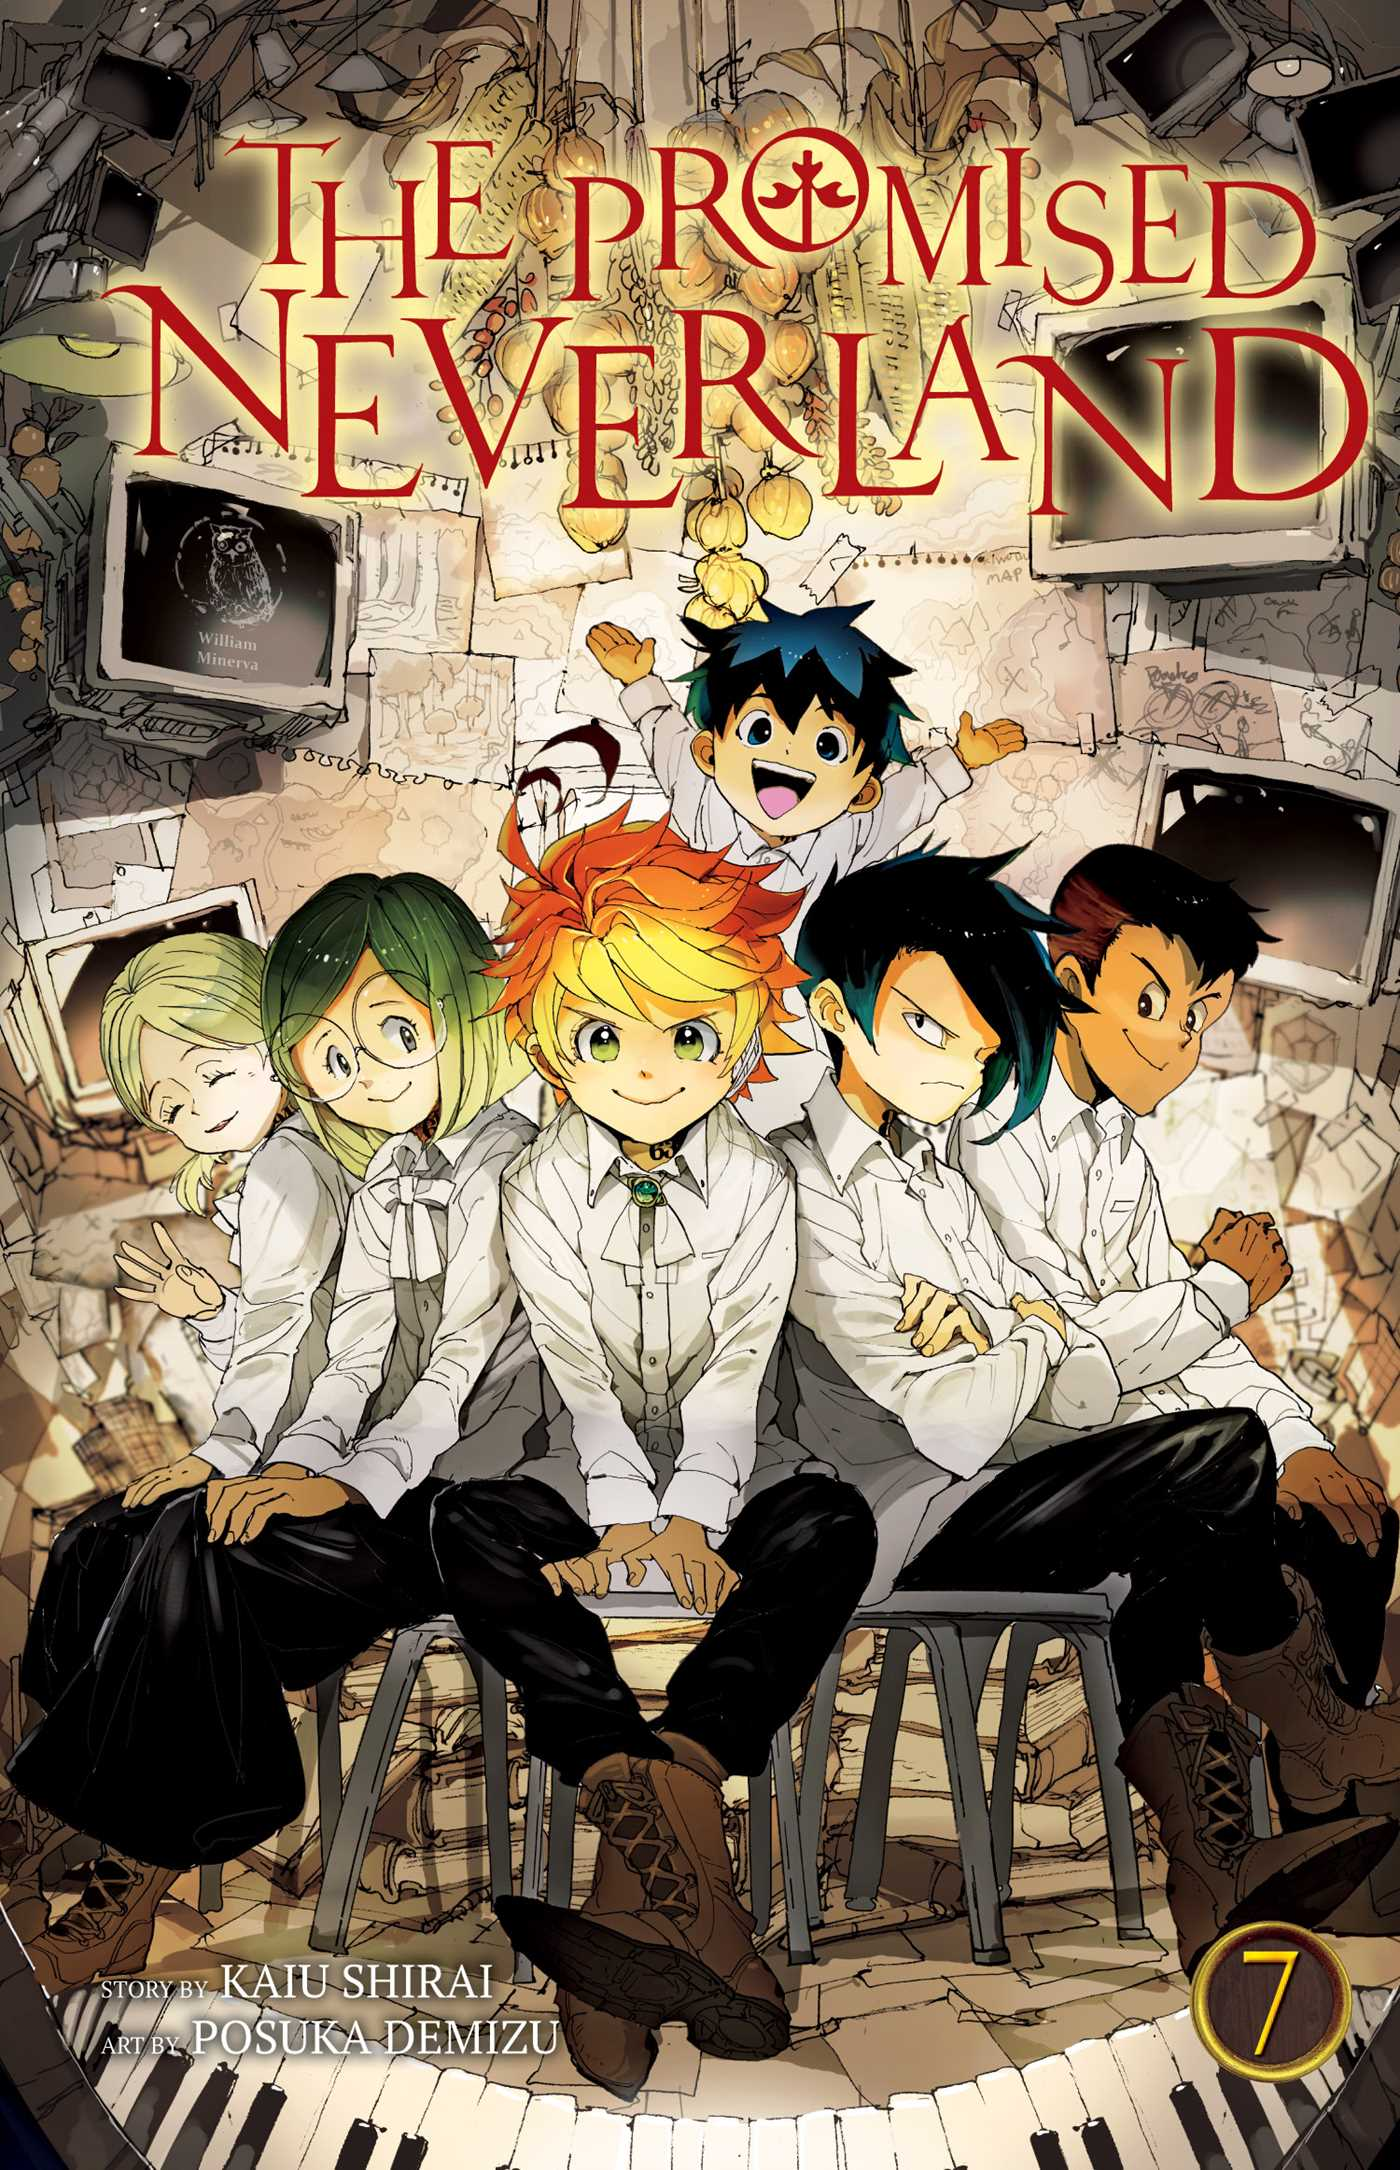 The Promised Neverland Vol. 7 Review